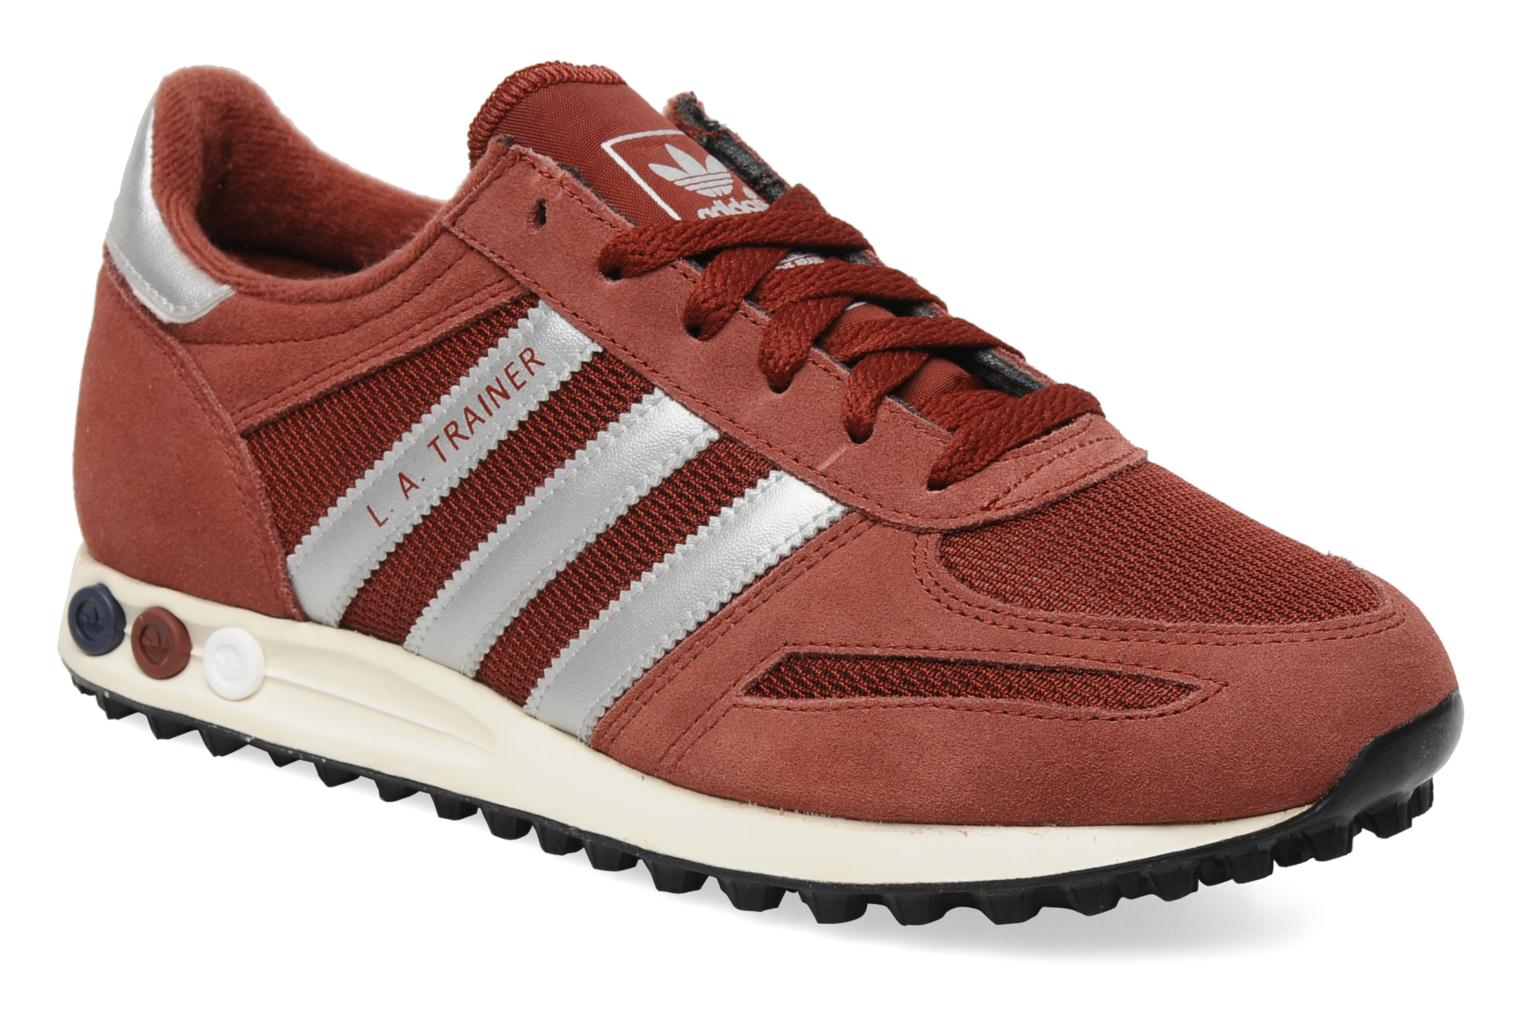 cheap for discount b0b1b 56d39 coupon for adidas zx 700 red 67159 1f8d0  ireland sneakers adidas originals  la trainer bordò vedi dettaglio paio 0514e 07461